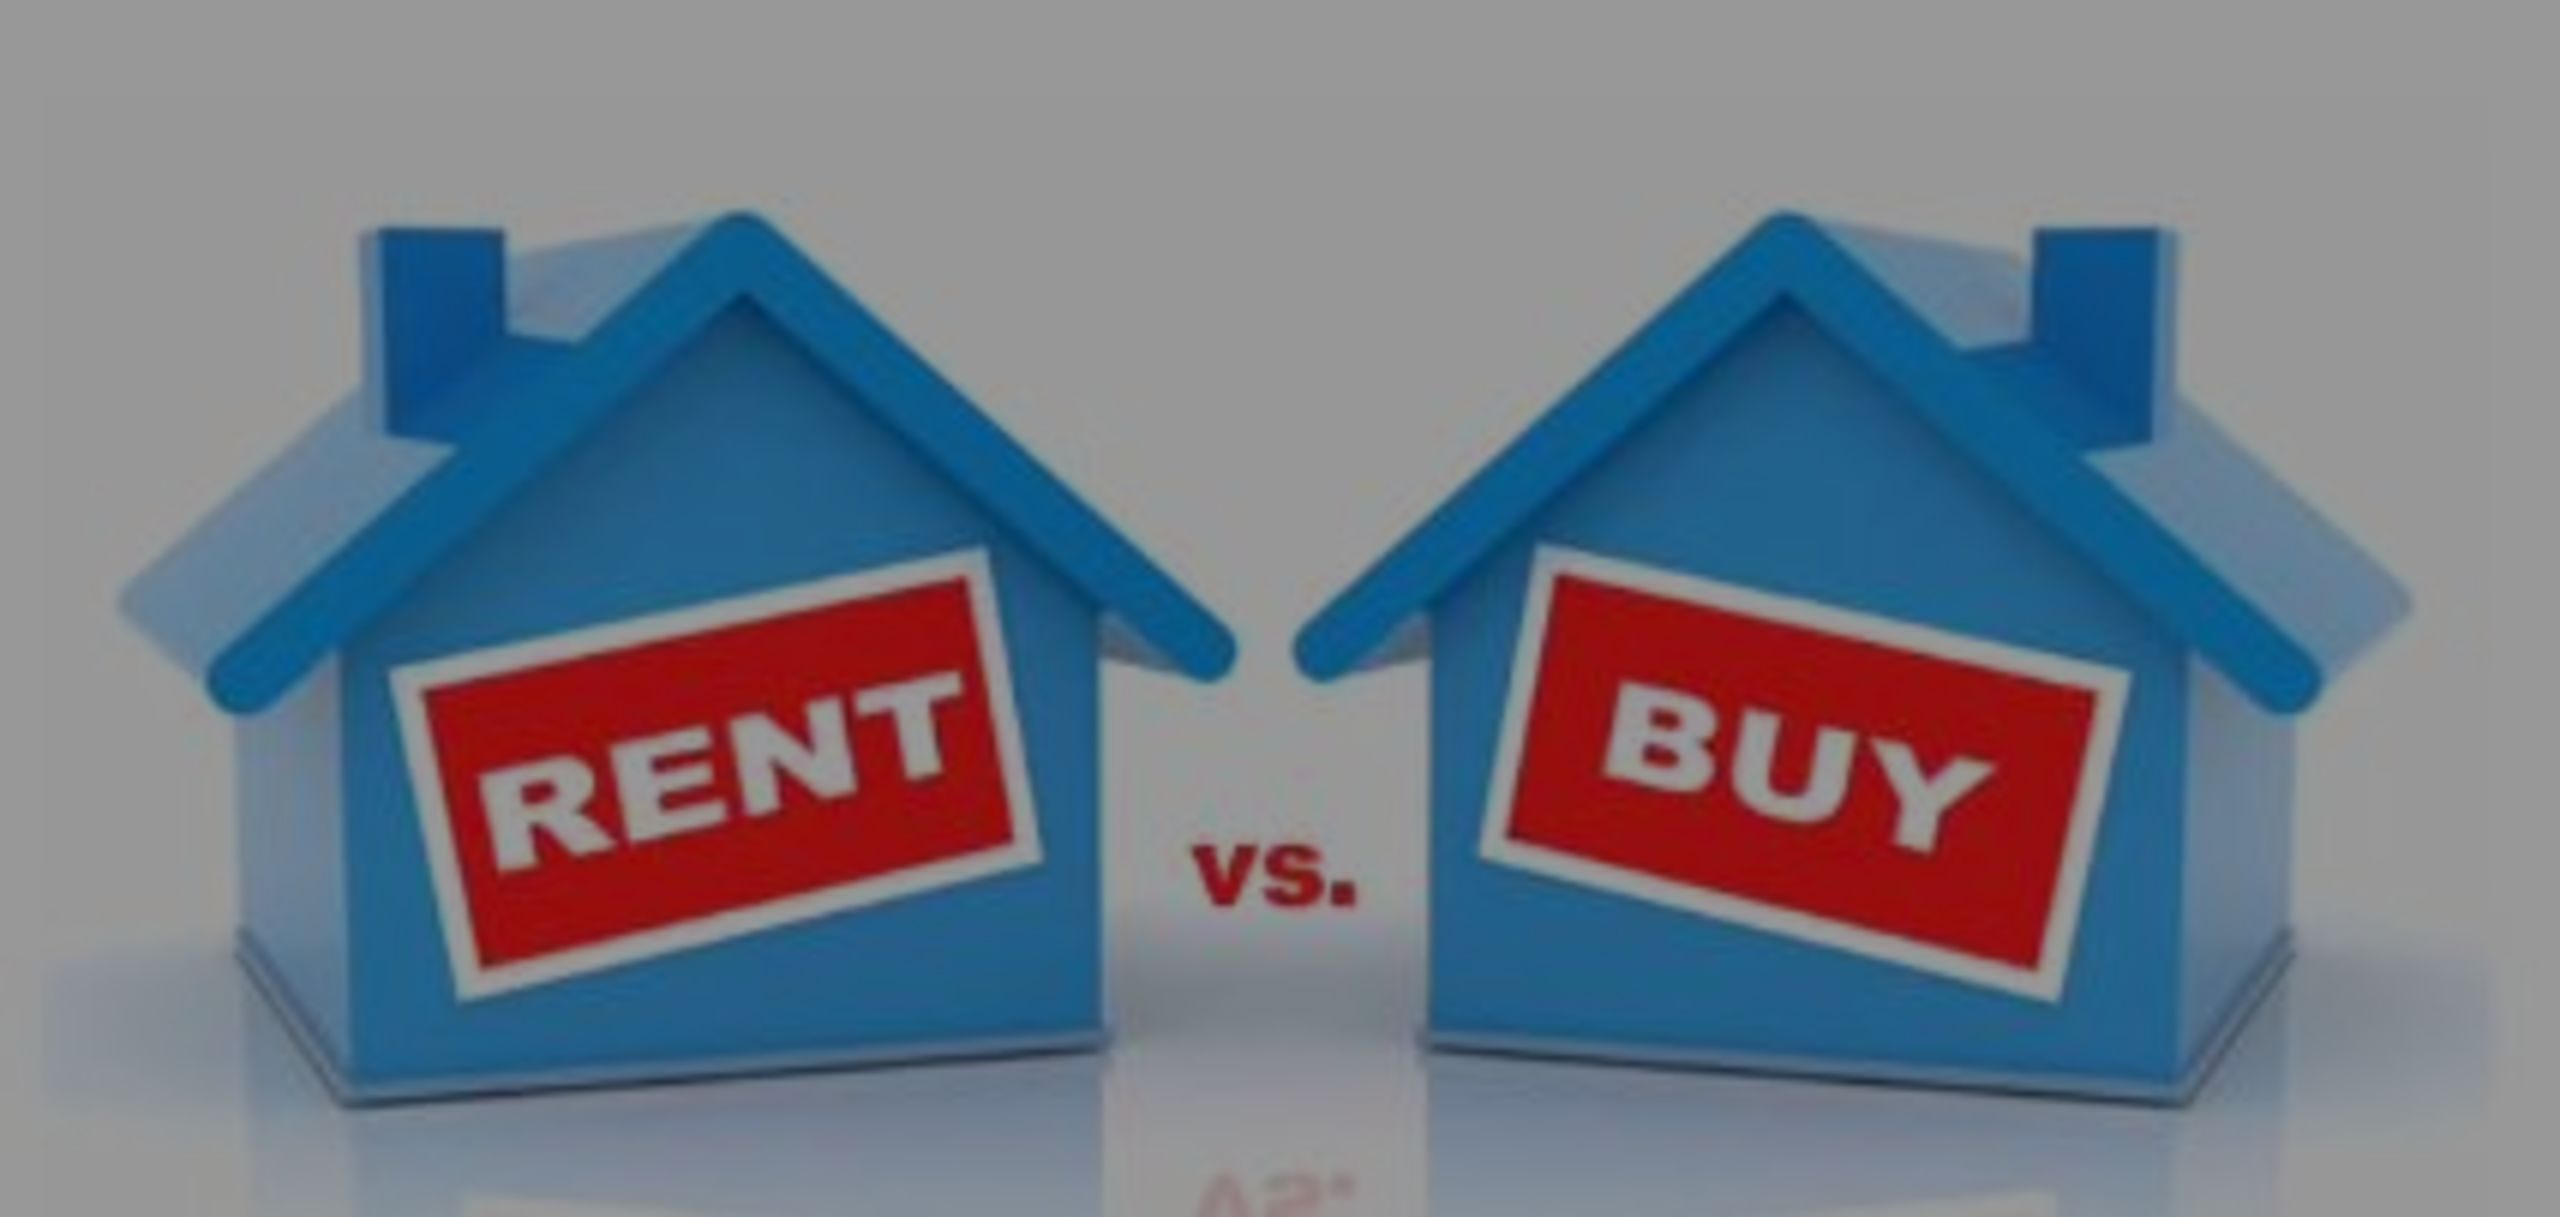 When is a good time to rent Vs. buy?